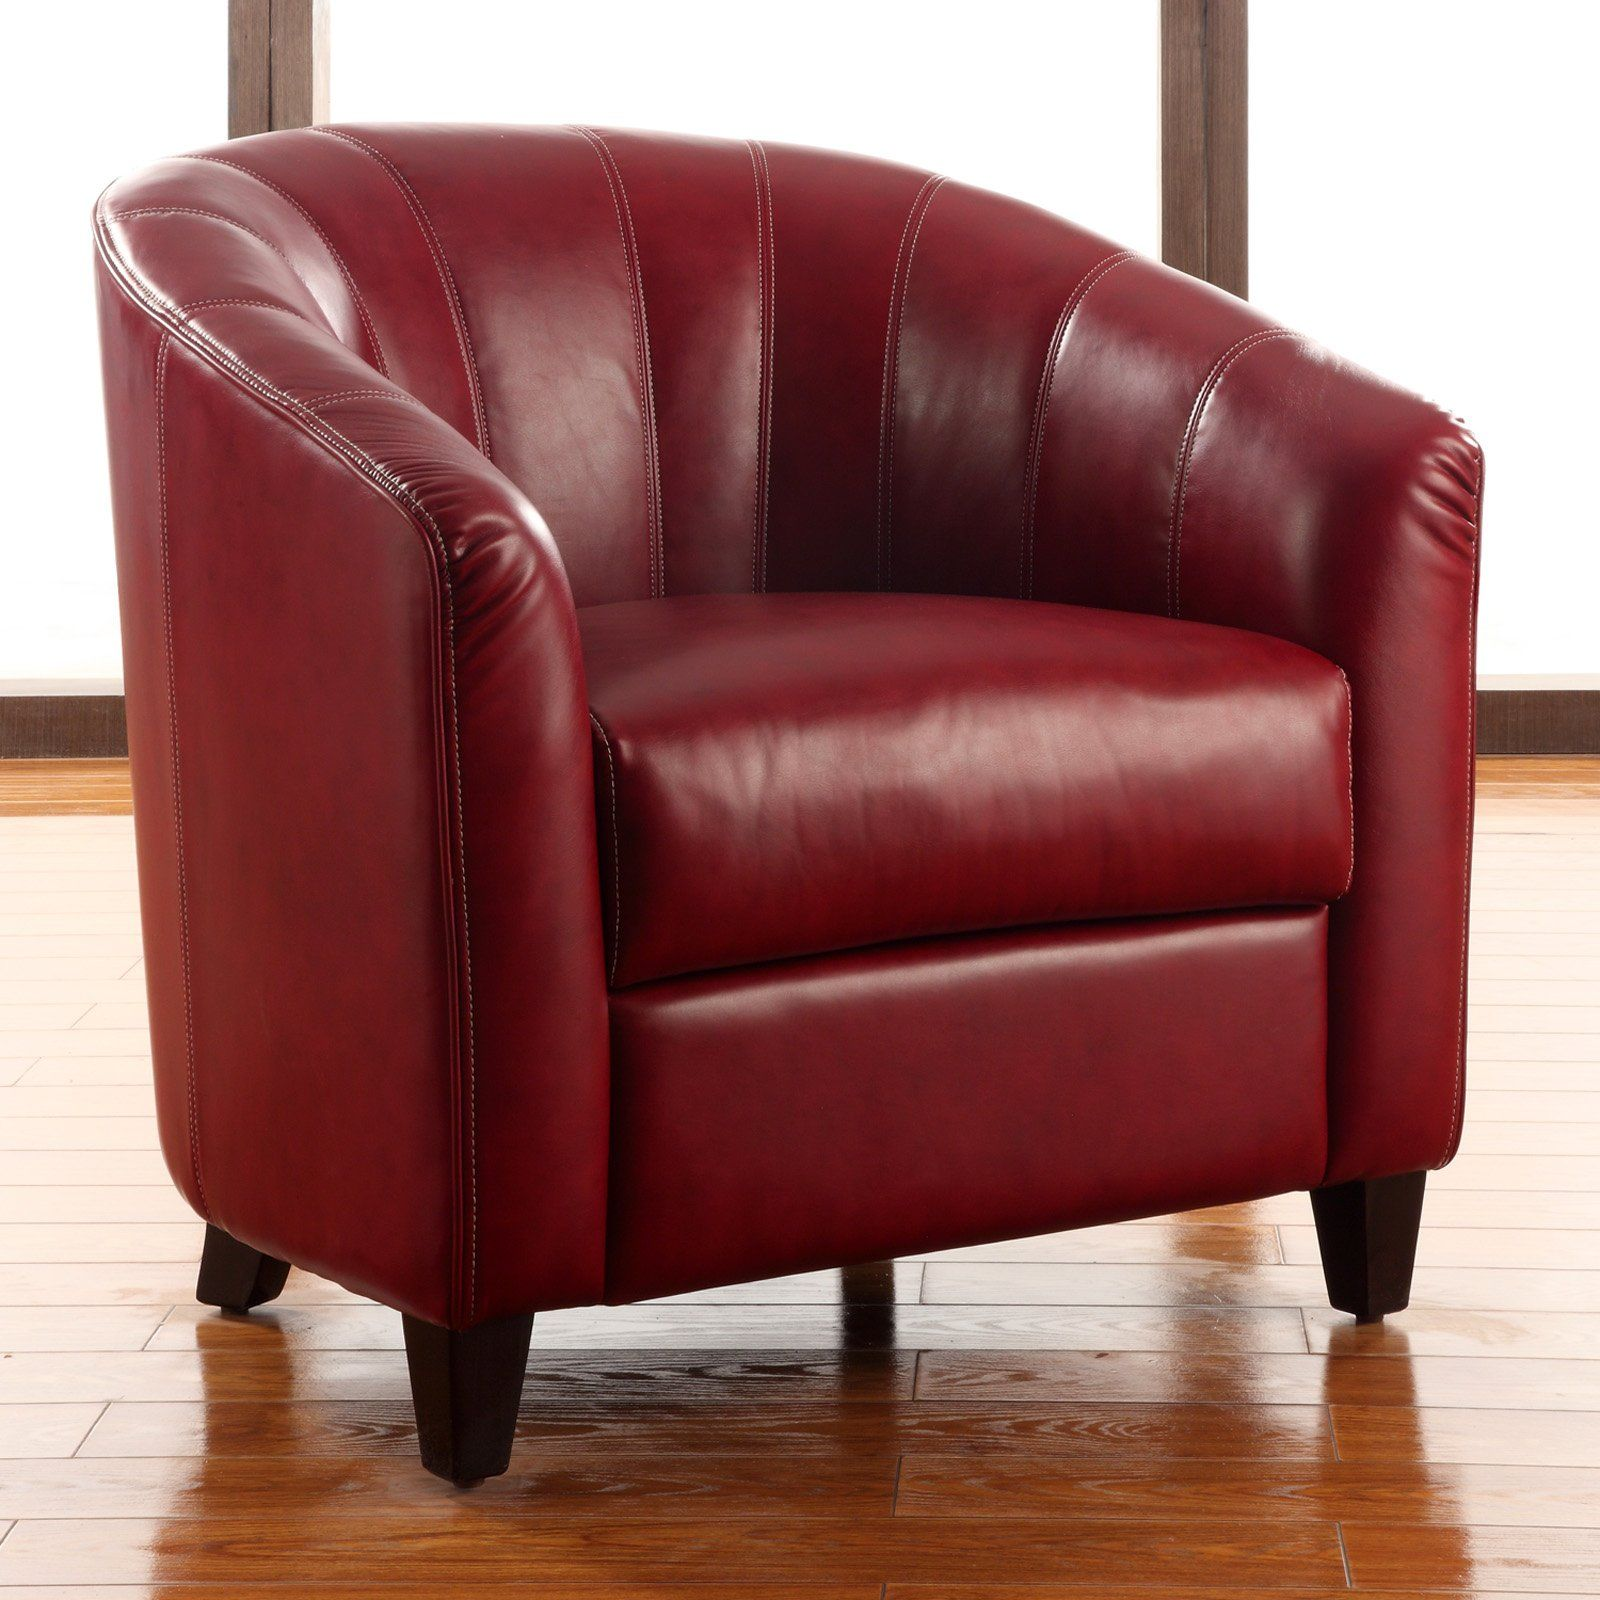 Best Hayneedle Hadley Faux Leather Accent Chair Burnt Red 400 x 300